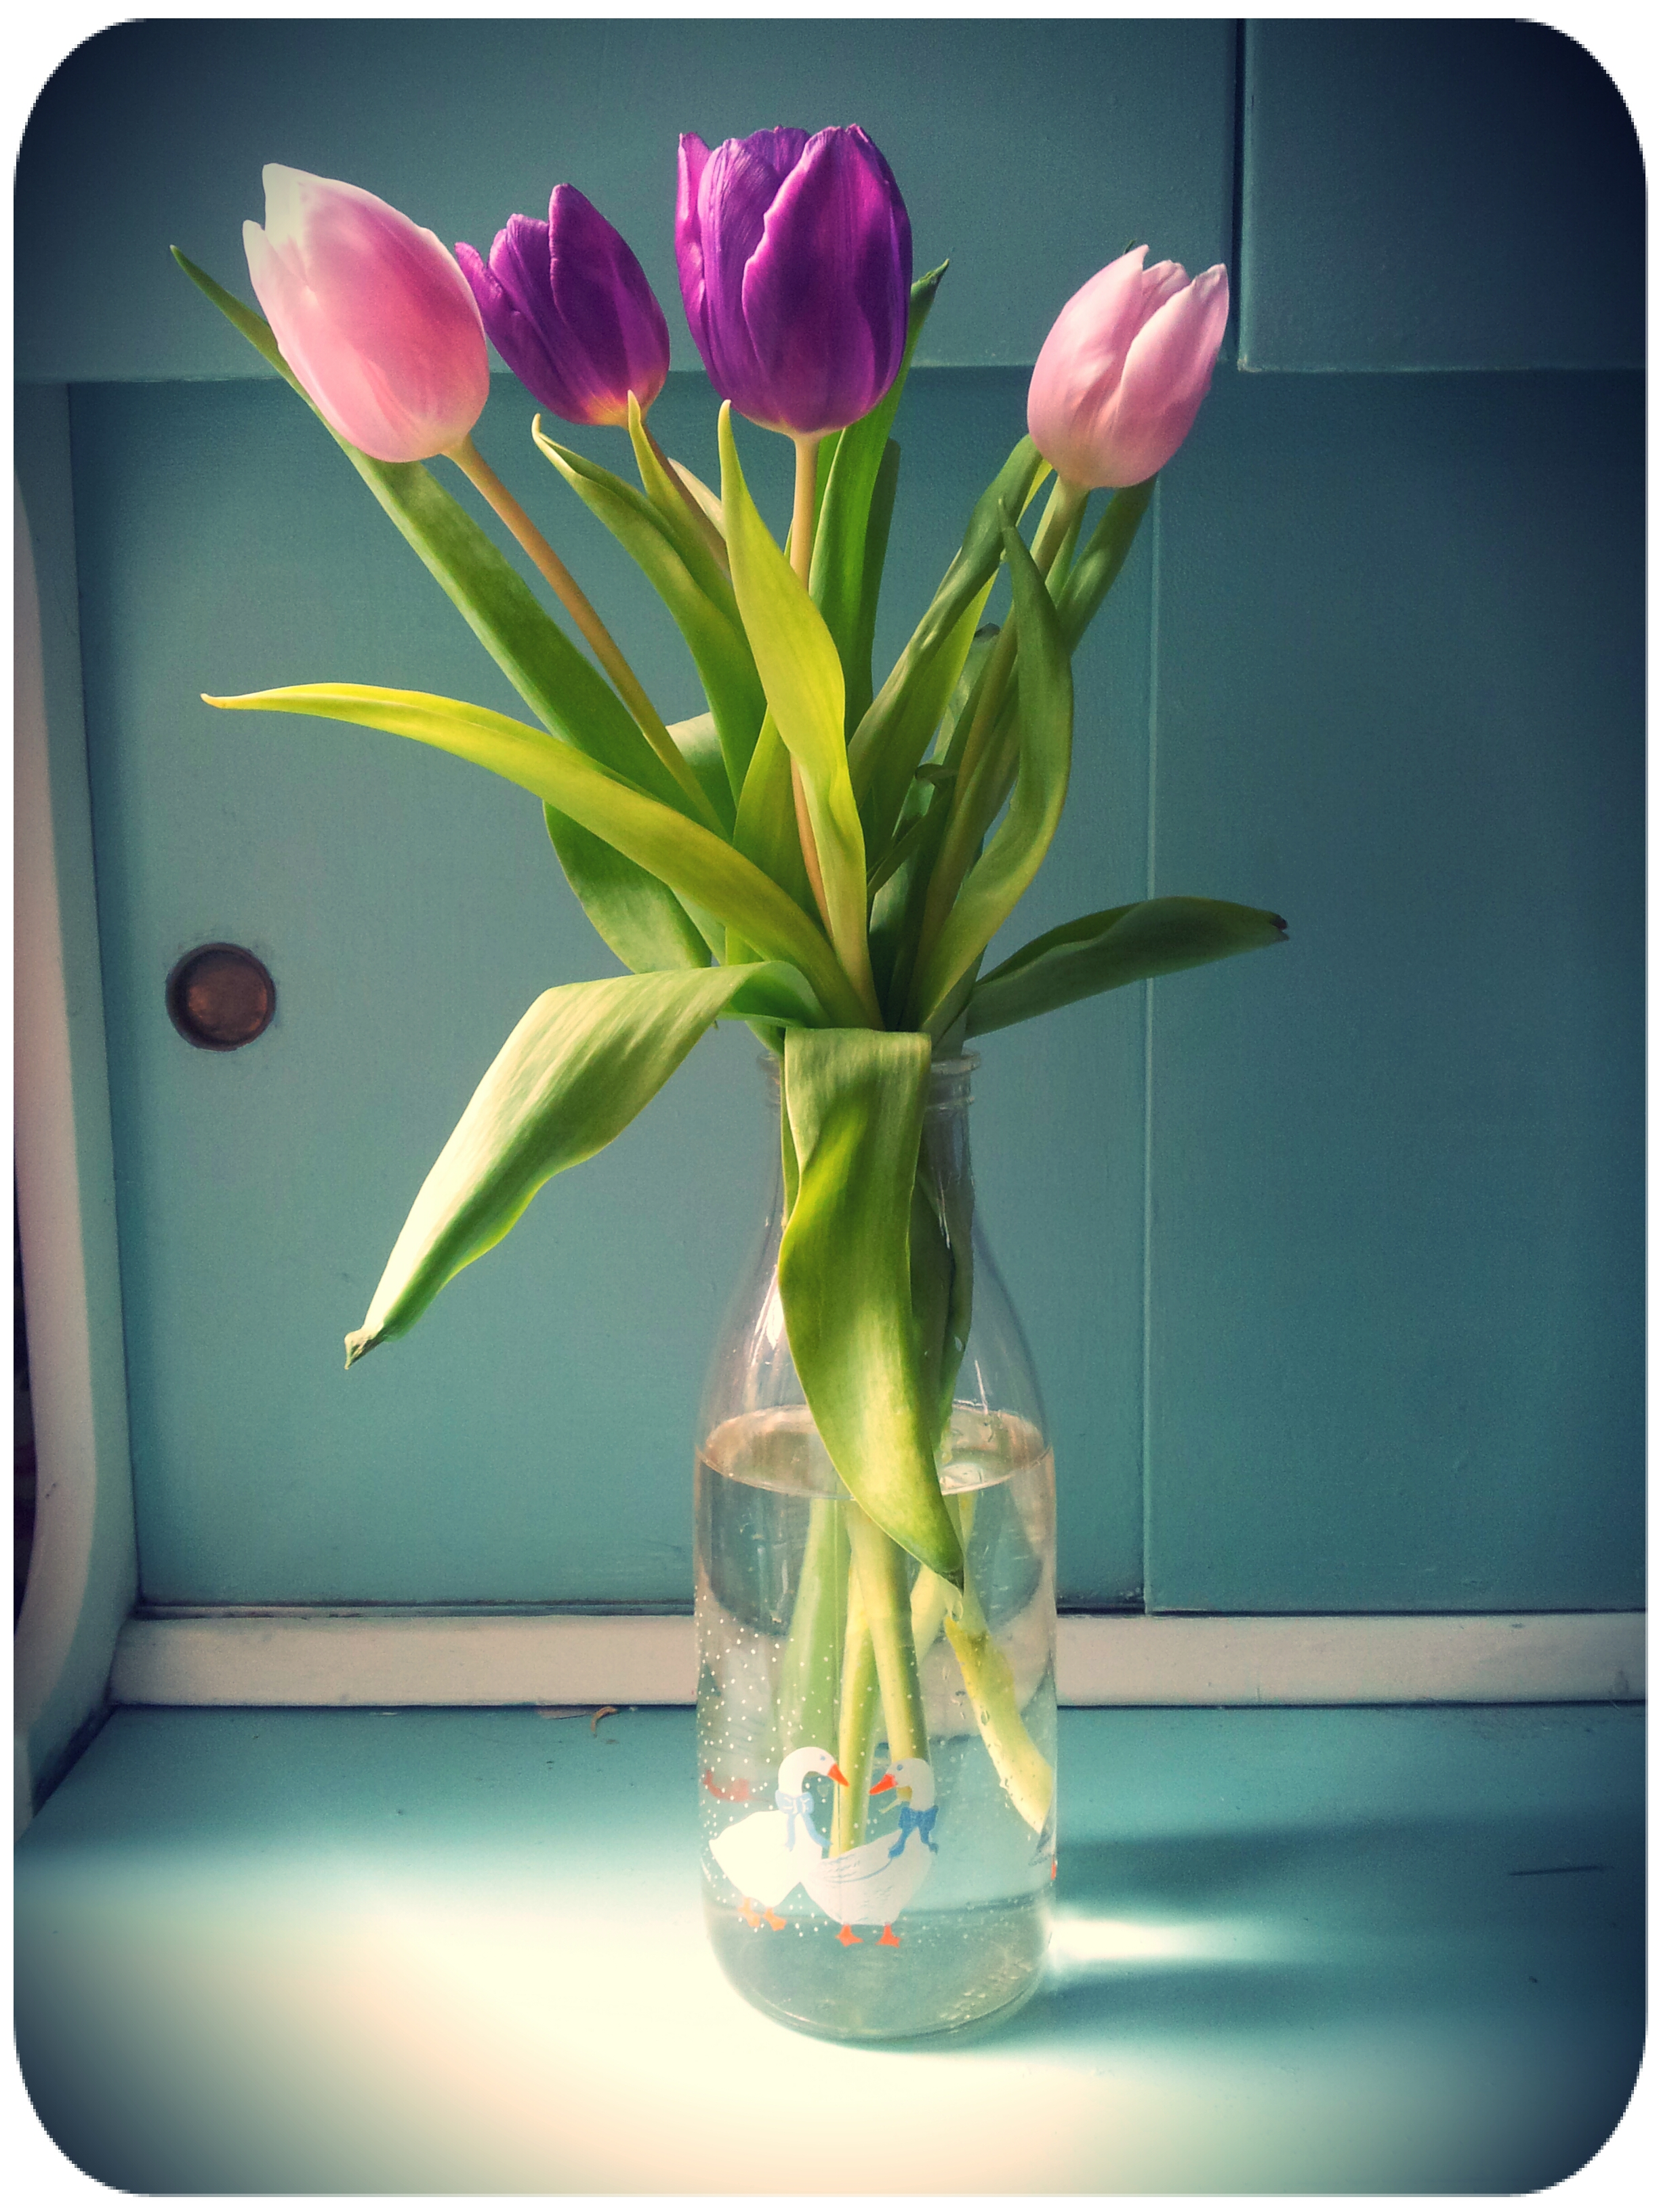 Some of the beautiful tulips giving to me by my colleagues in my new bottle